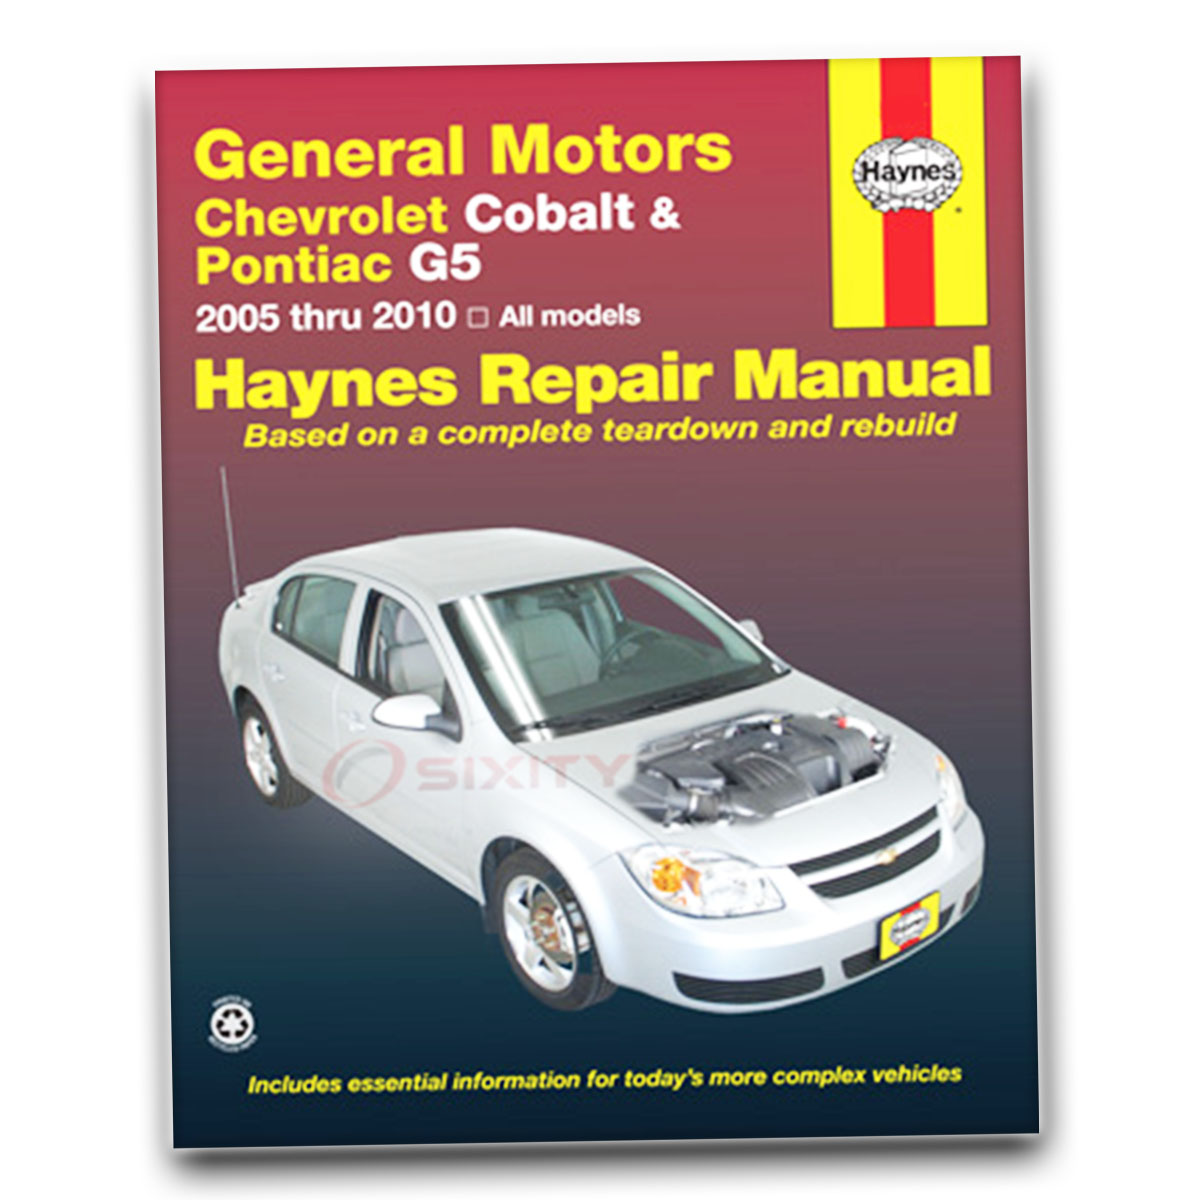 chevy cobalt haynes repair manual ss base ls lt sport ltz shop rh ebay com 2007 Chevrolet Cobalt Sedan 2007 Chevrolet Captiva Interior